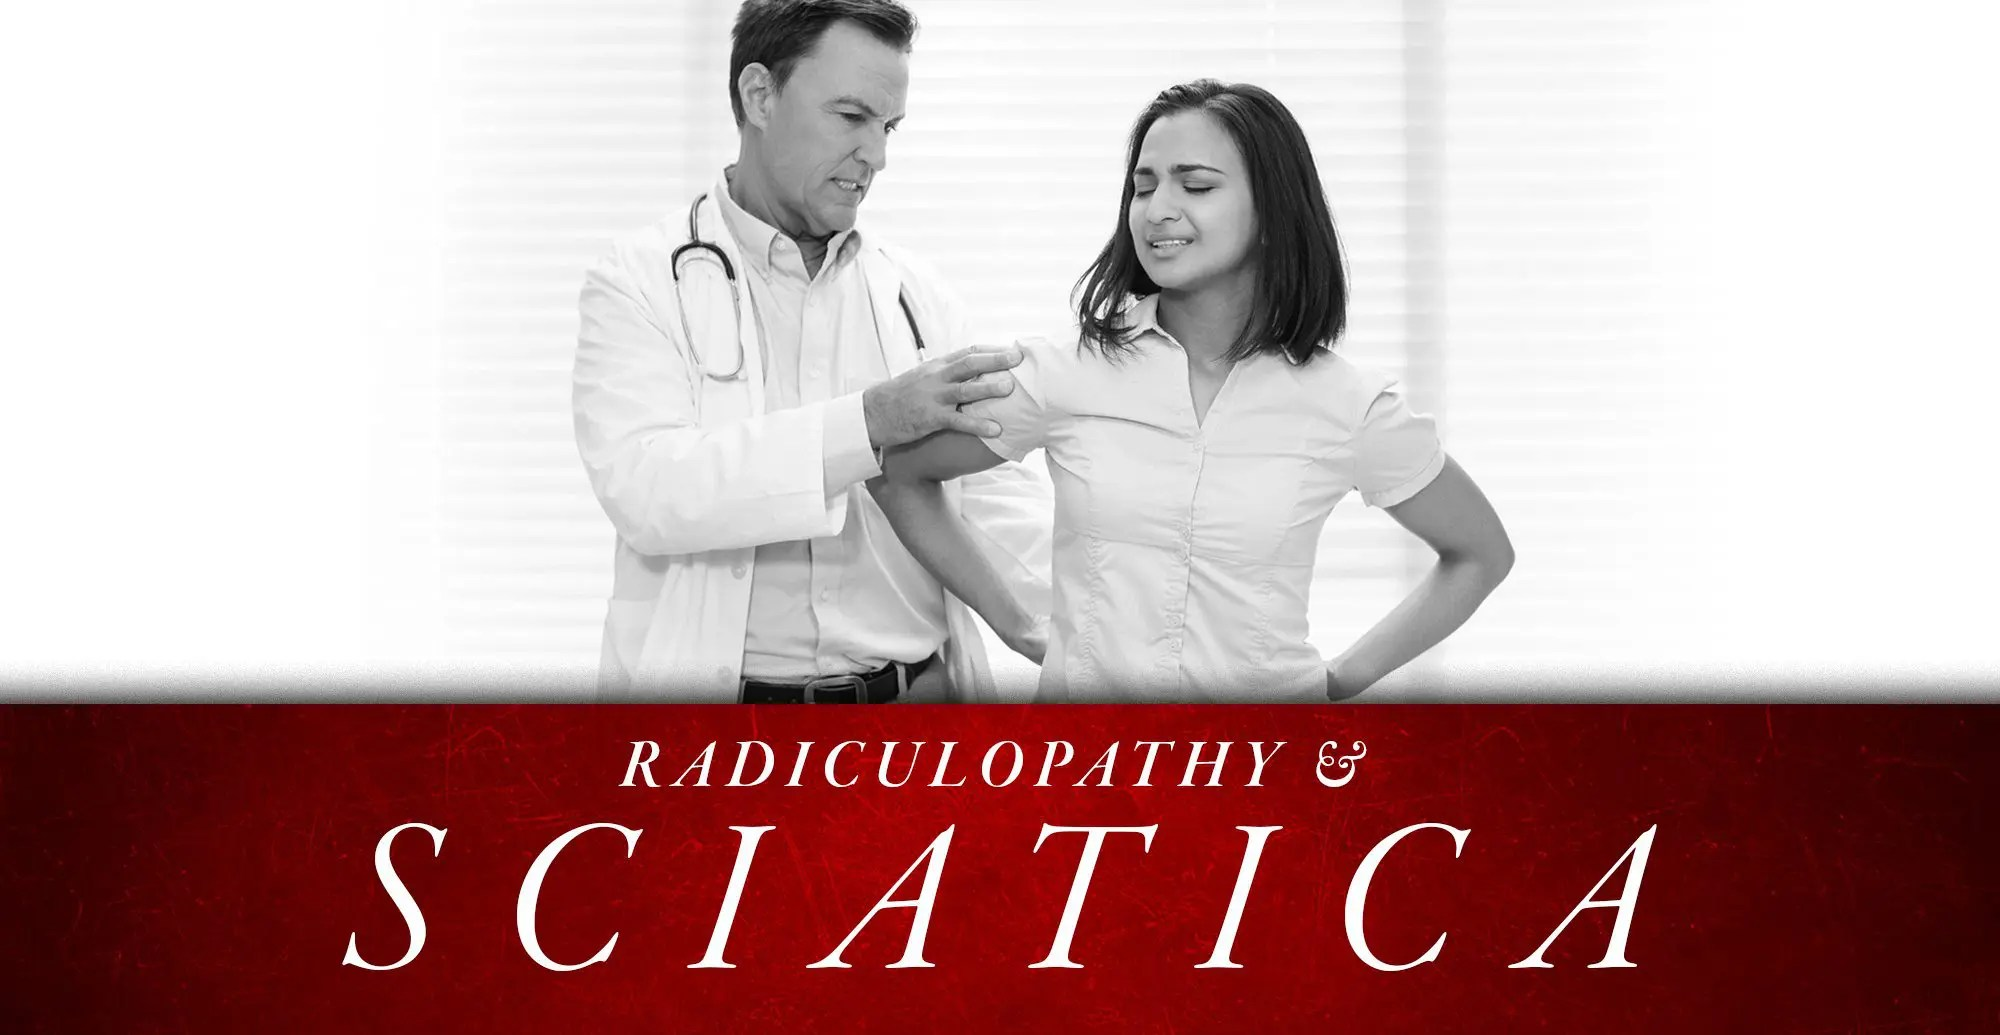 Radiculopathy and Sciatica